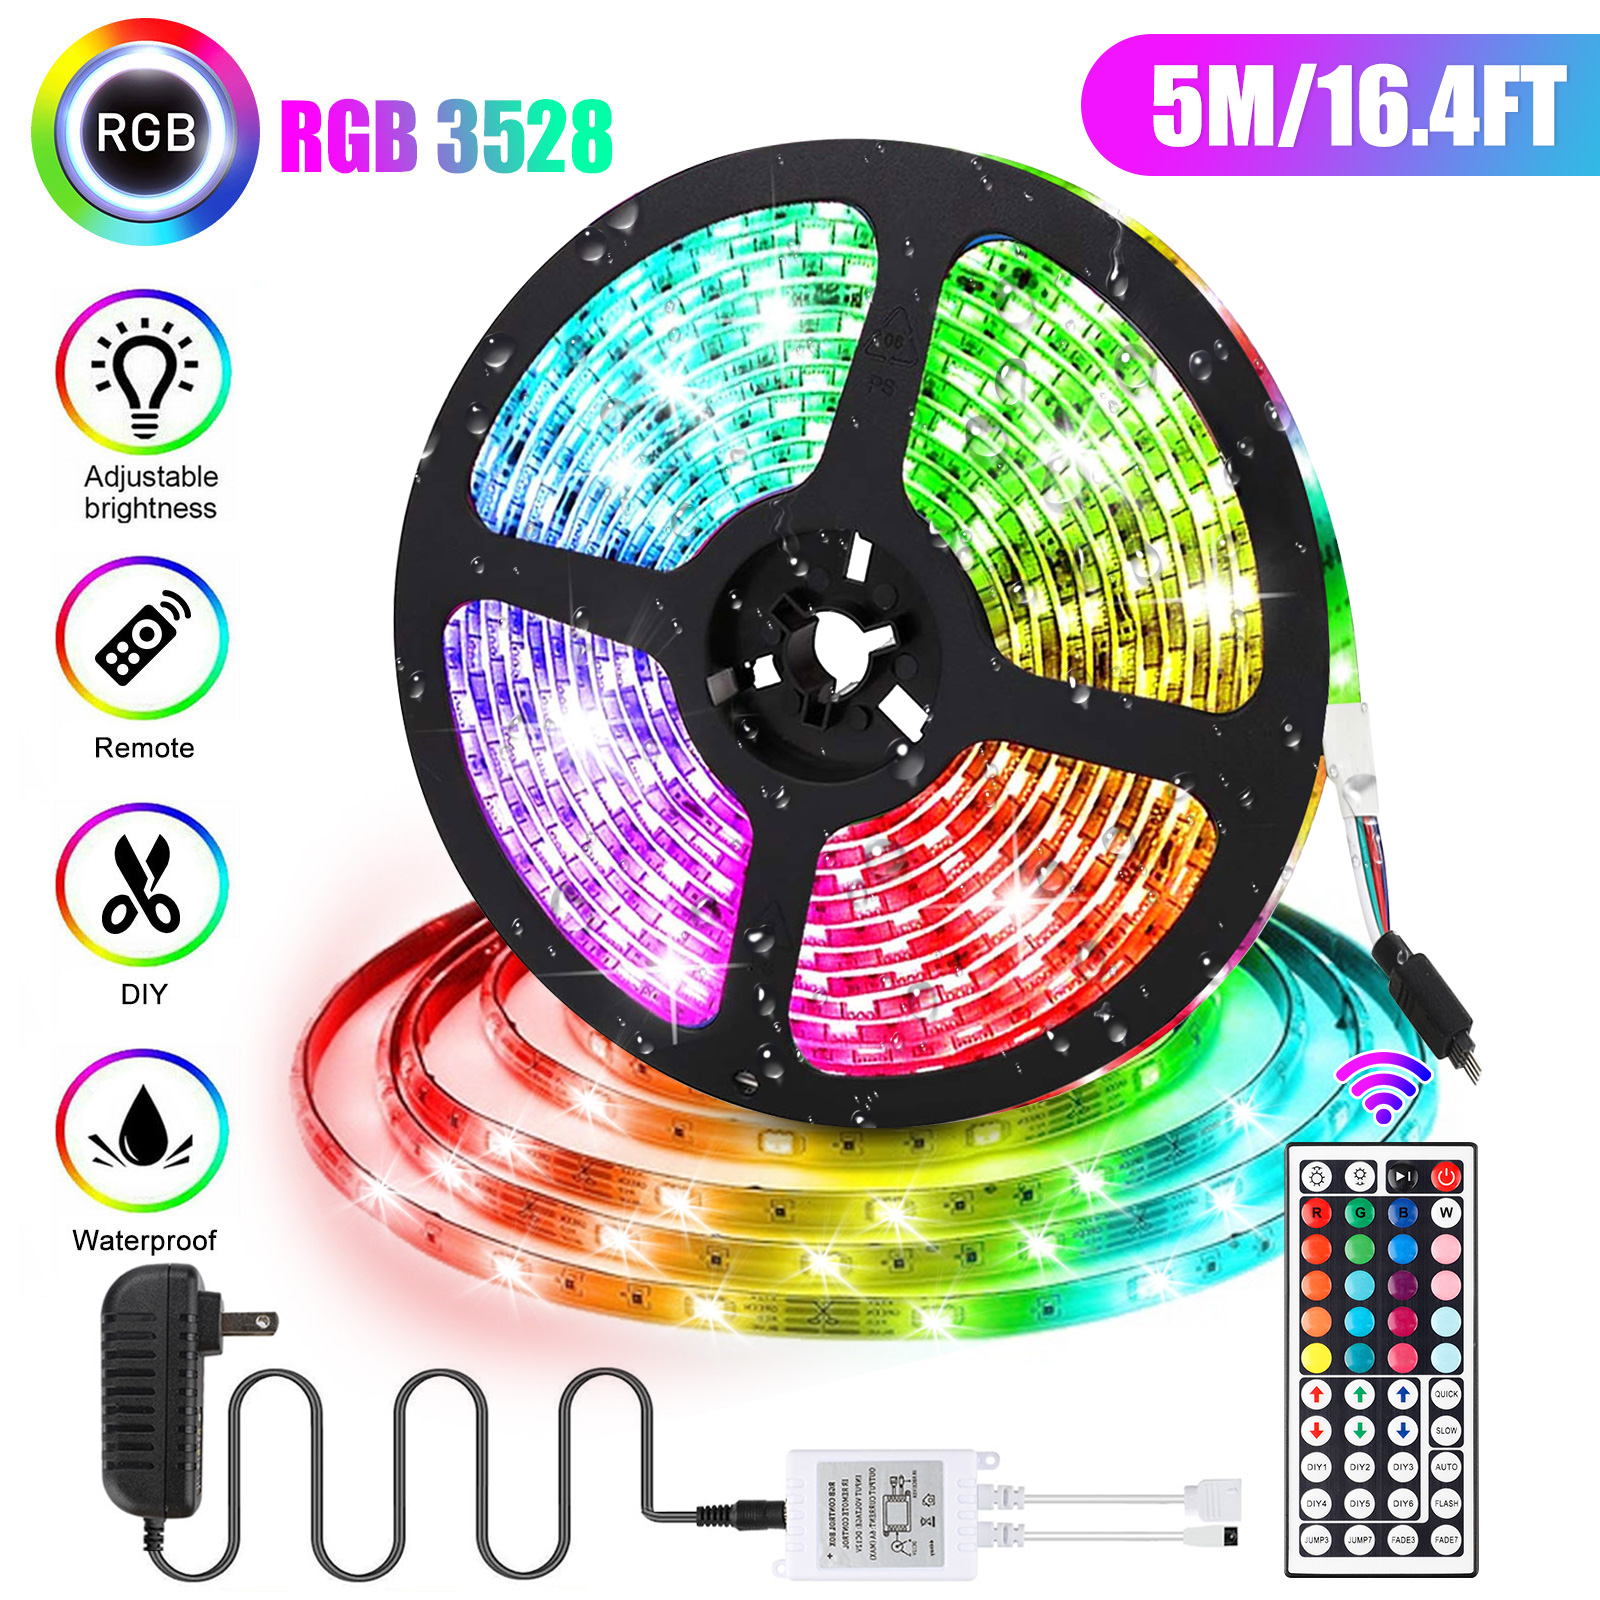 Eeekit 16 4ft 300 Led 3528smd Led Strip Lights Multi Color Changing Led Rope Lights For Bedroom With 44key Remote 12v Dc Power Supply For Home Room Office Decorations Walmart Com Walmart Com